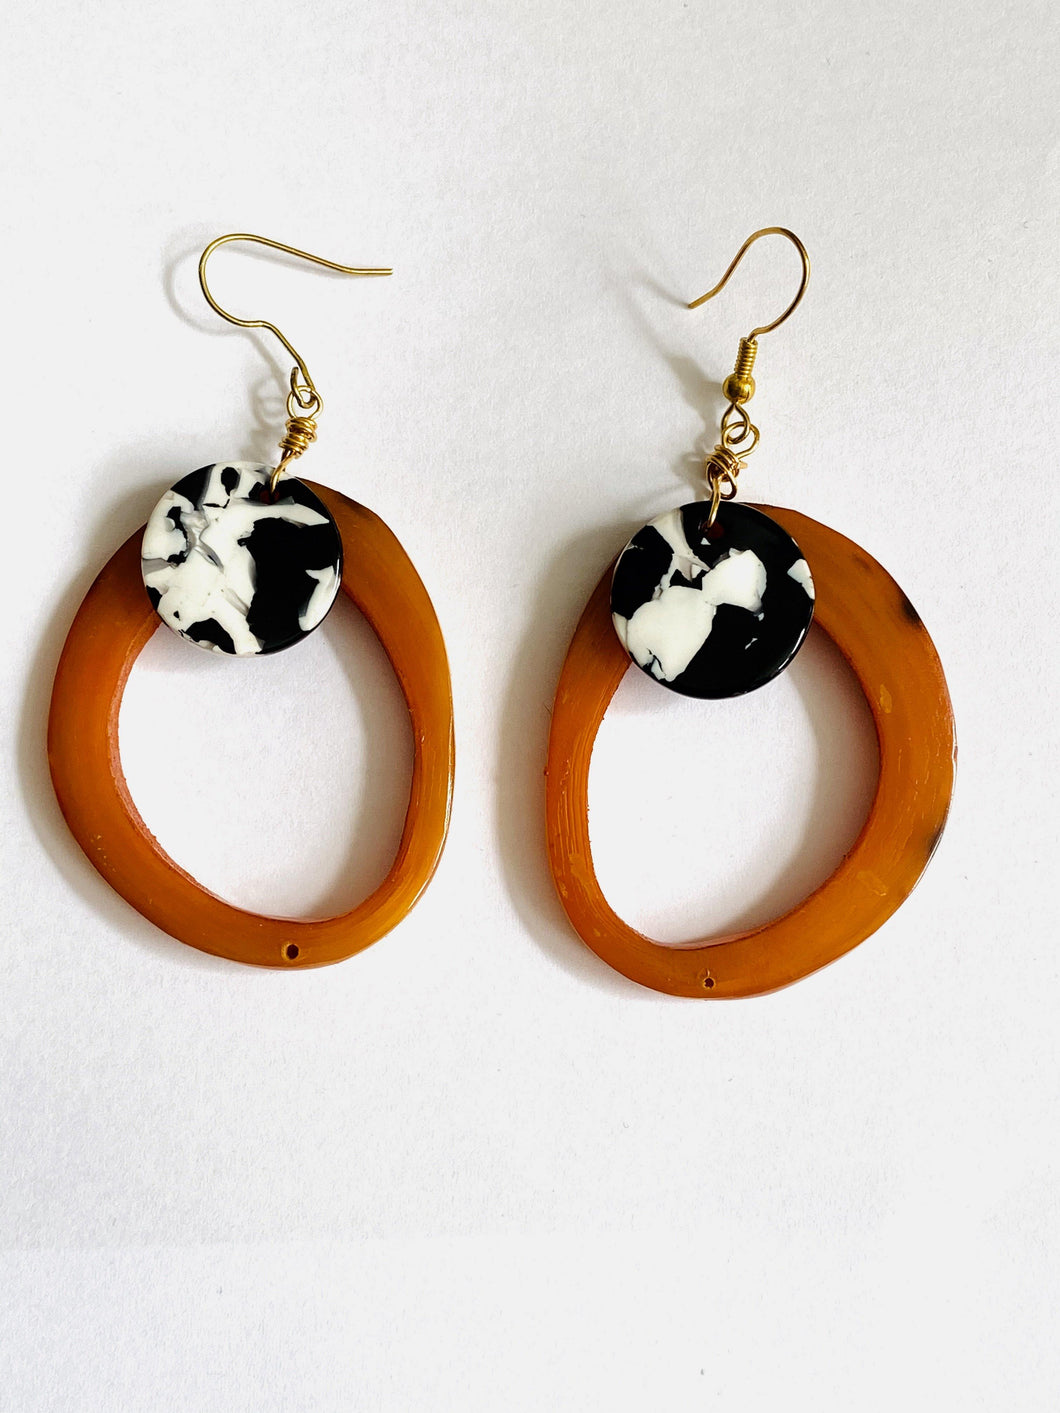 Horn (Recycled) Orange and Black and White Earrings - Full Moon Designs